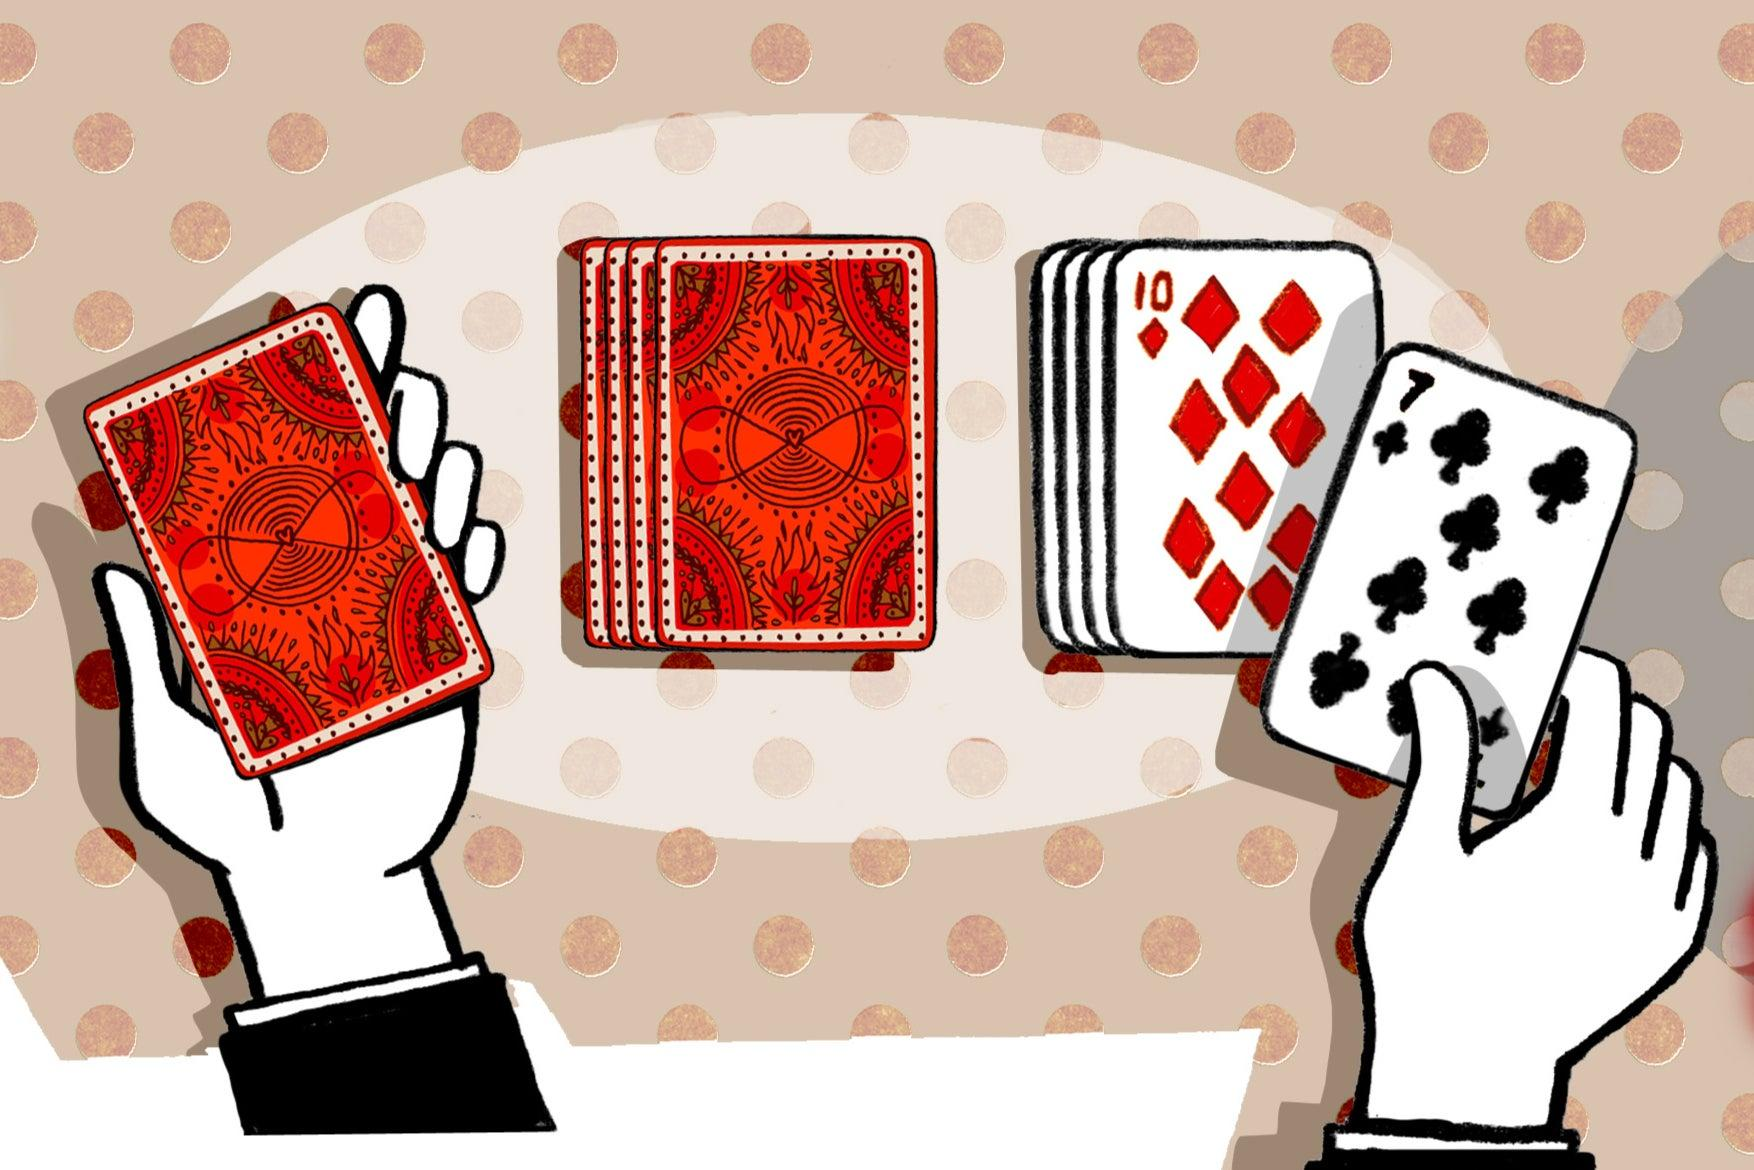 Take the 3rd STEM Challenge: learn a card trick that predicts the future by the magic of maths